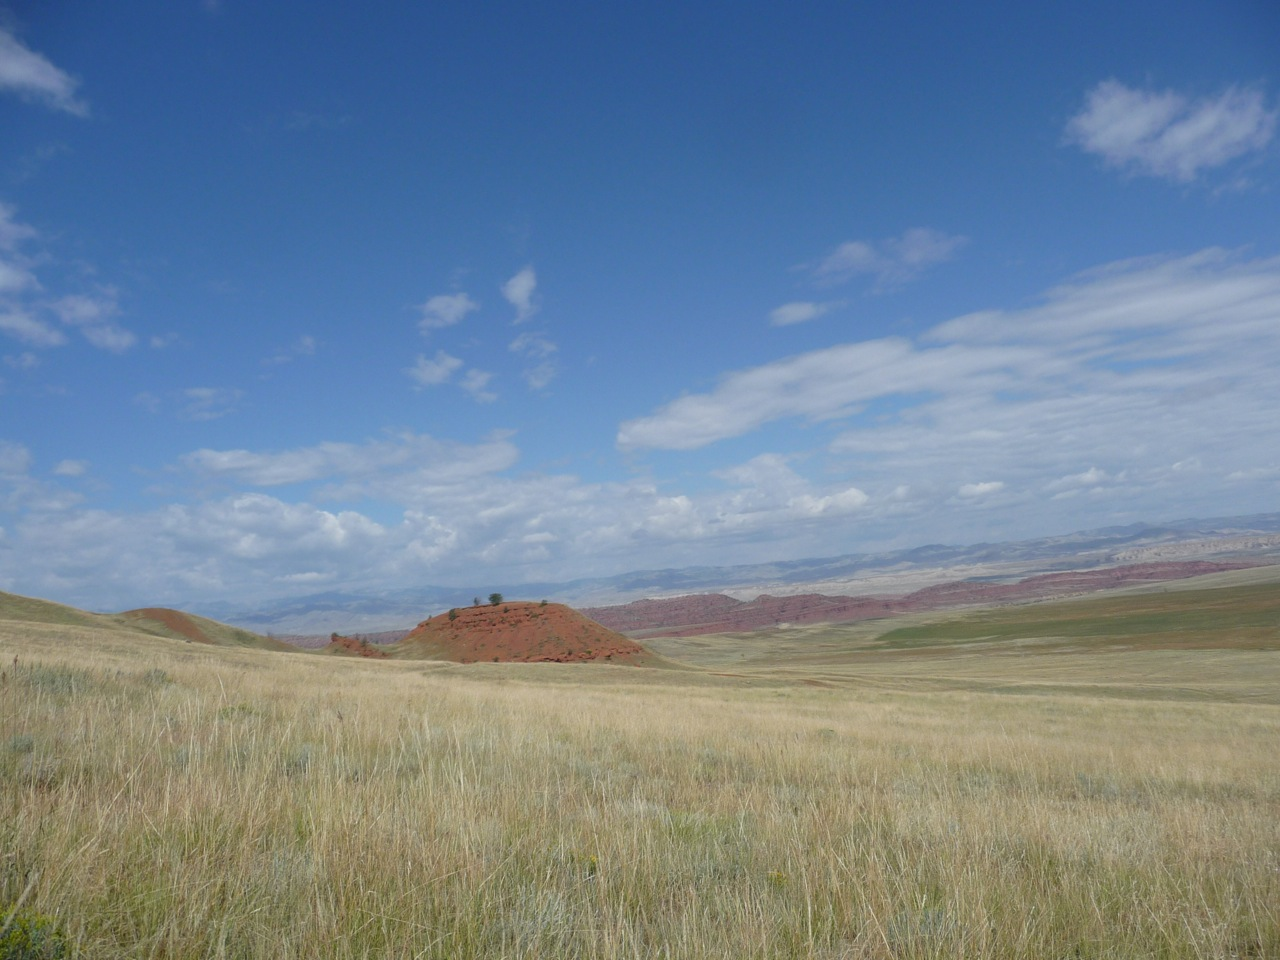 Photo of the drylands